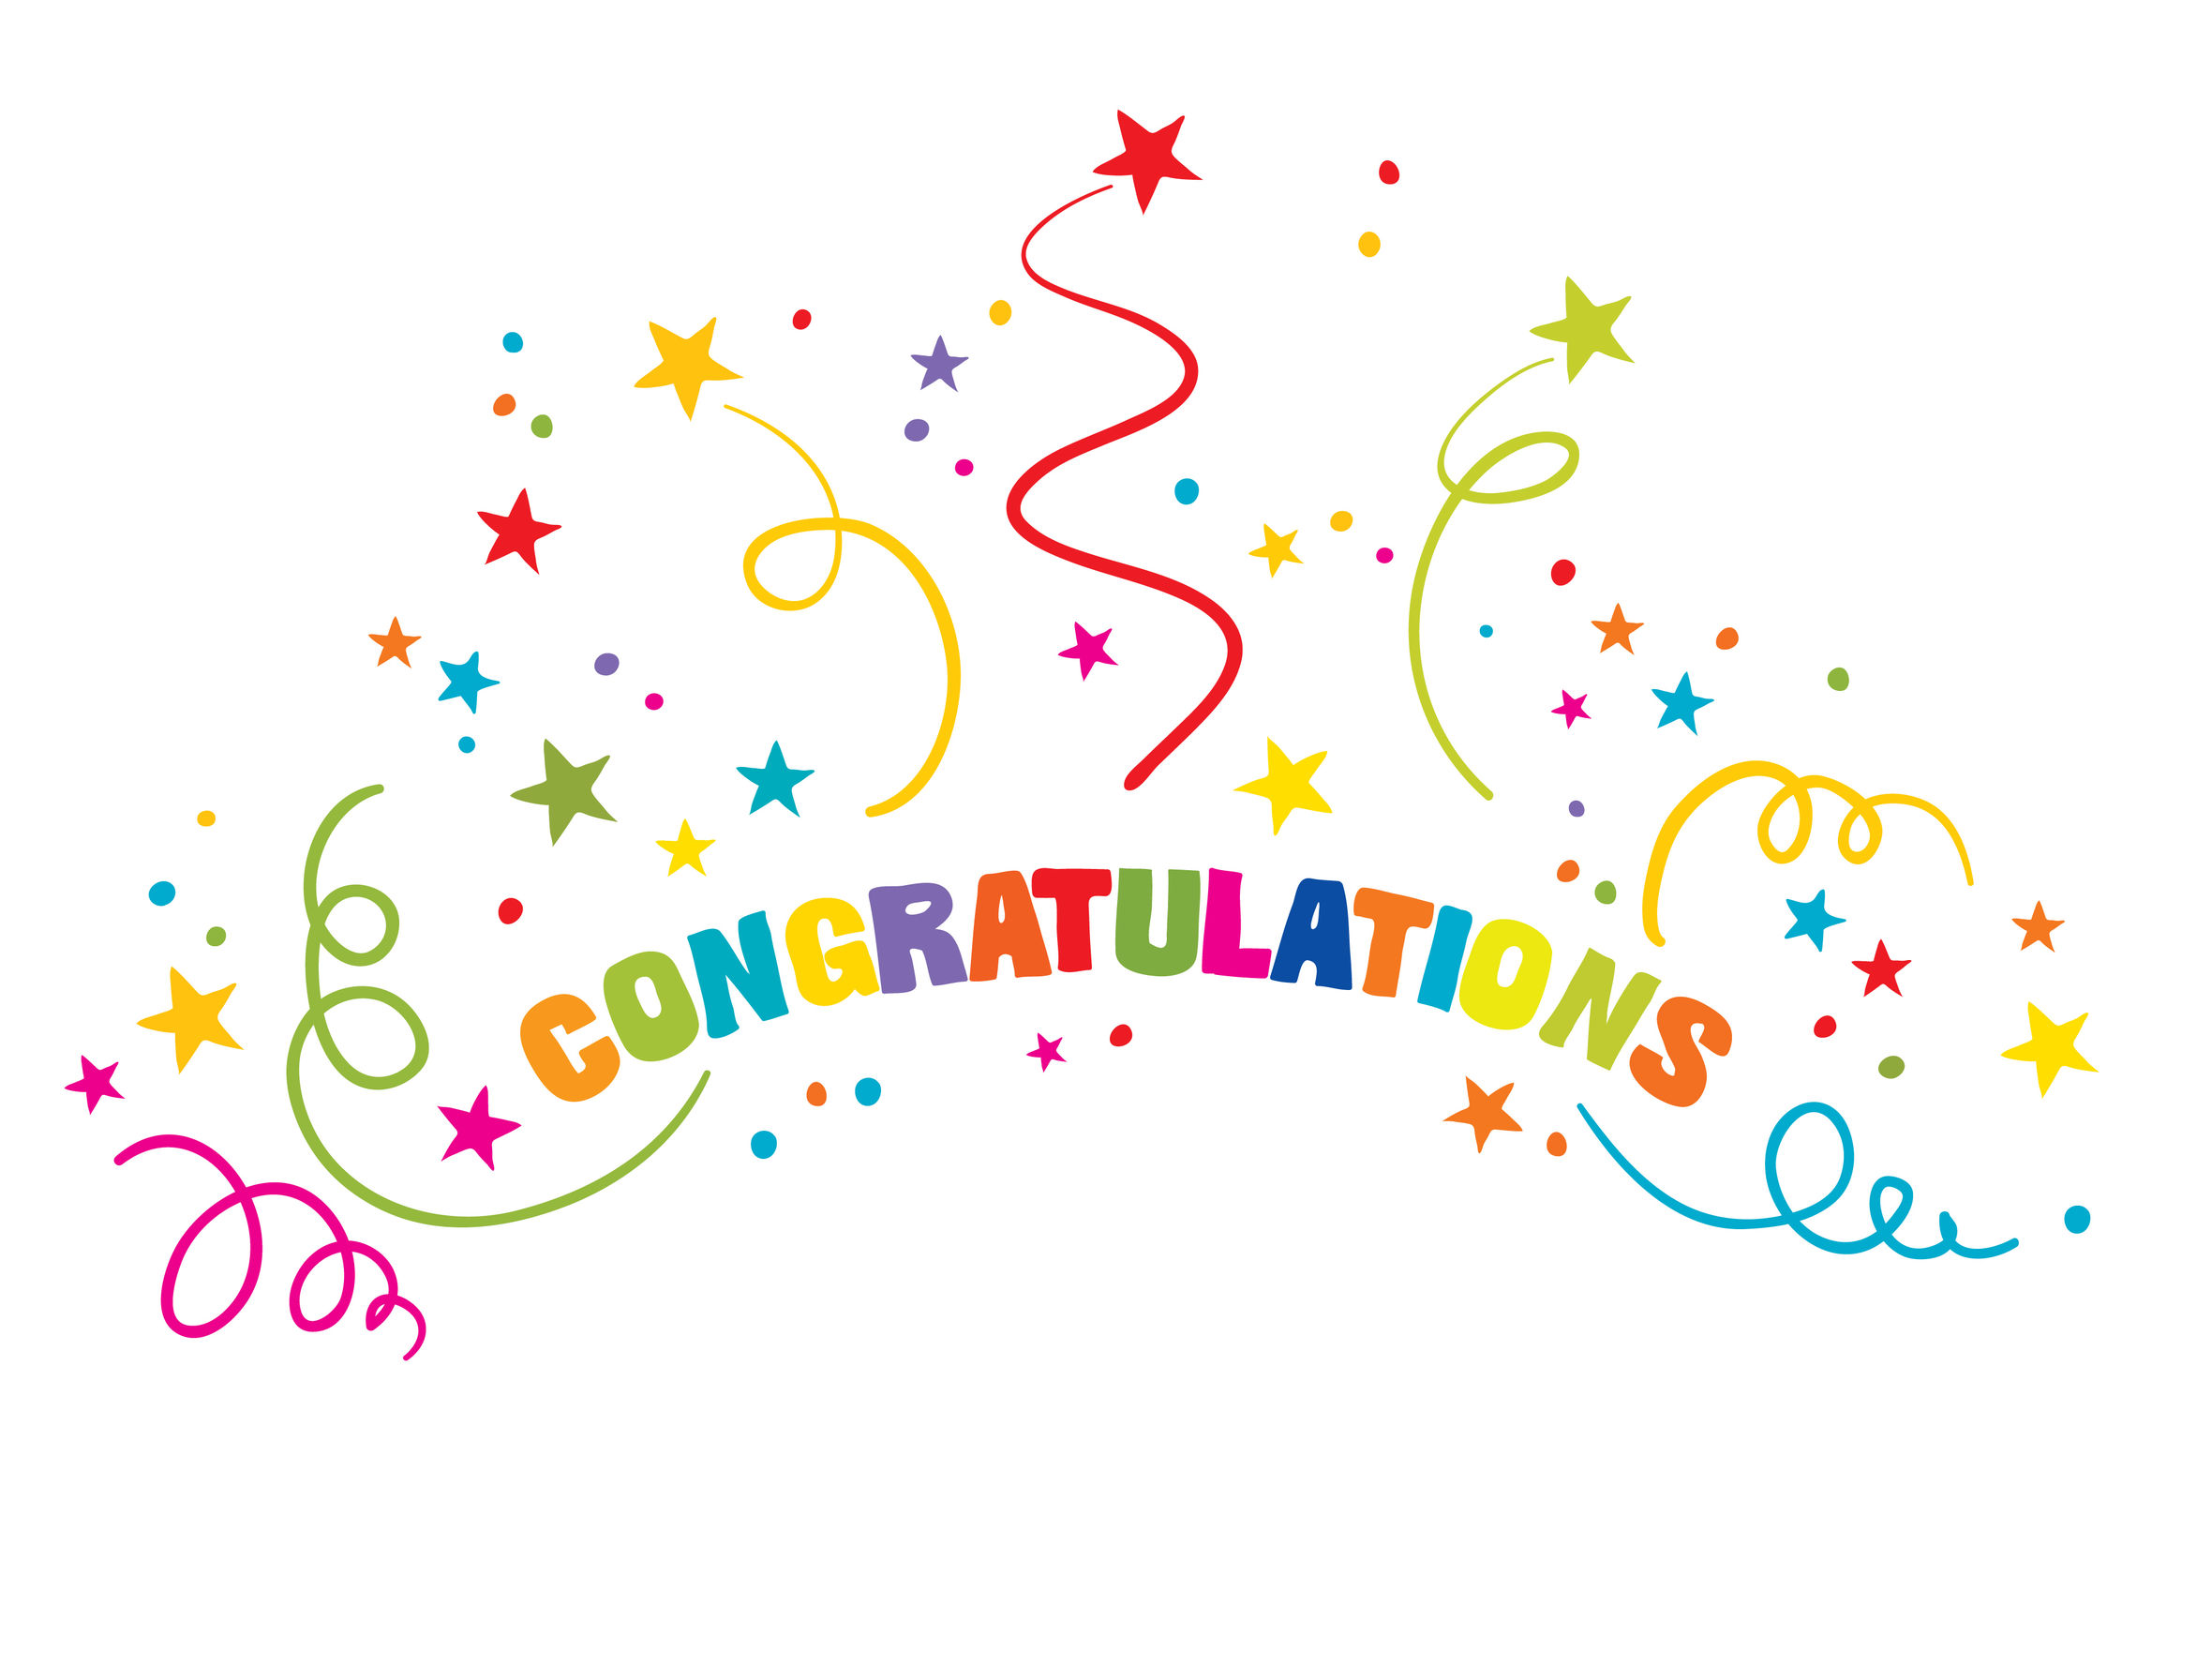 Congratulations clipart funny graphic royalty free Free Congratulation, Download Free Clip Art, Free Clip Art on ... graphic royalty free